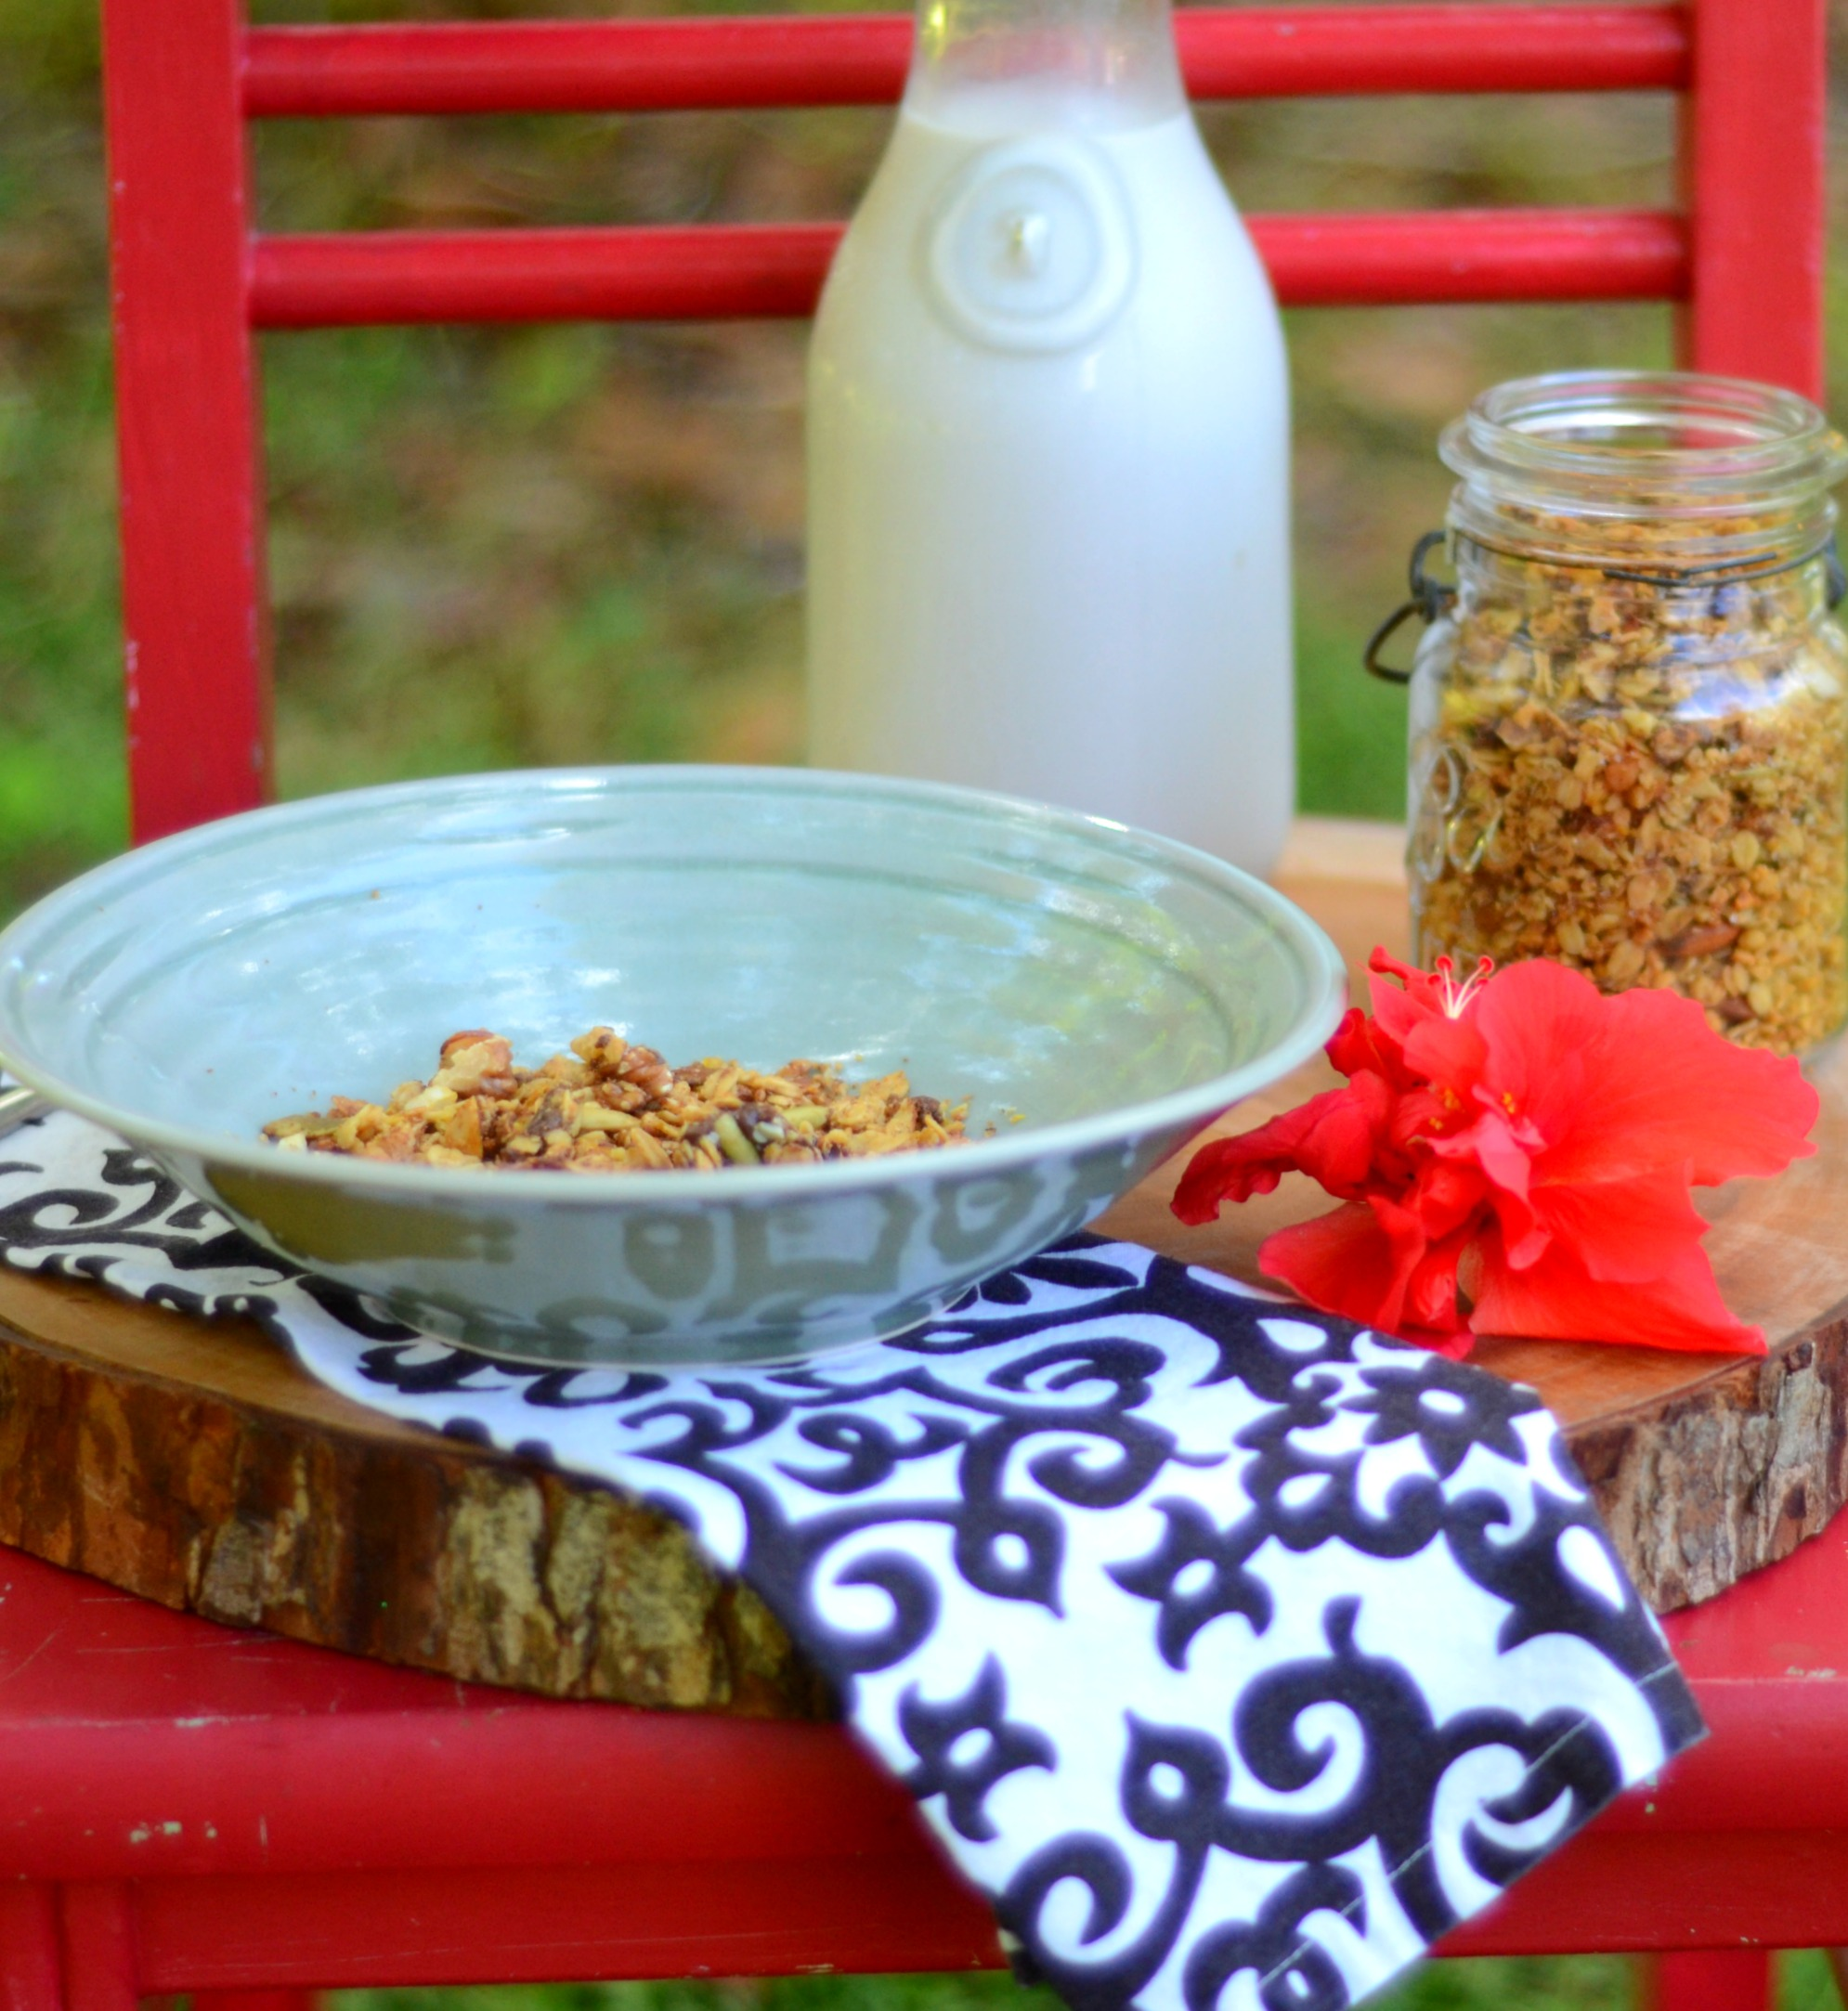 Cashew Butter and Chocolate Granola has to be one of our favorites. I make this at least once a week and it goes fast. | www.thesurferskitchen.com